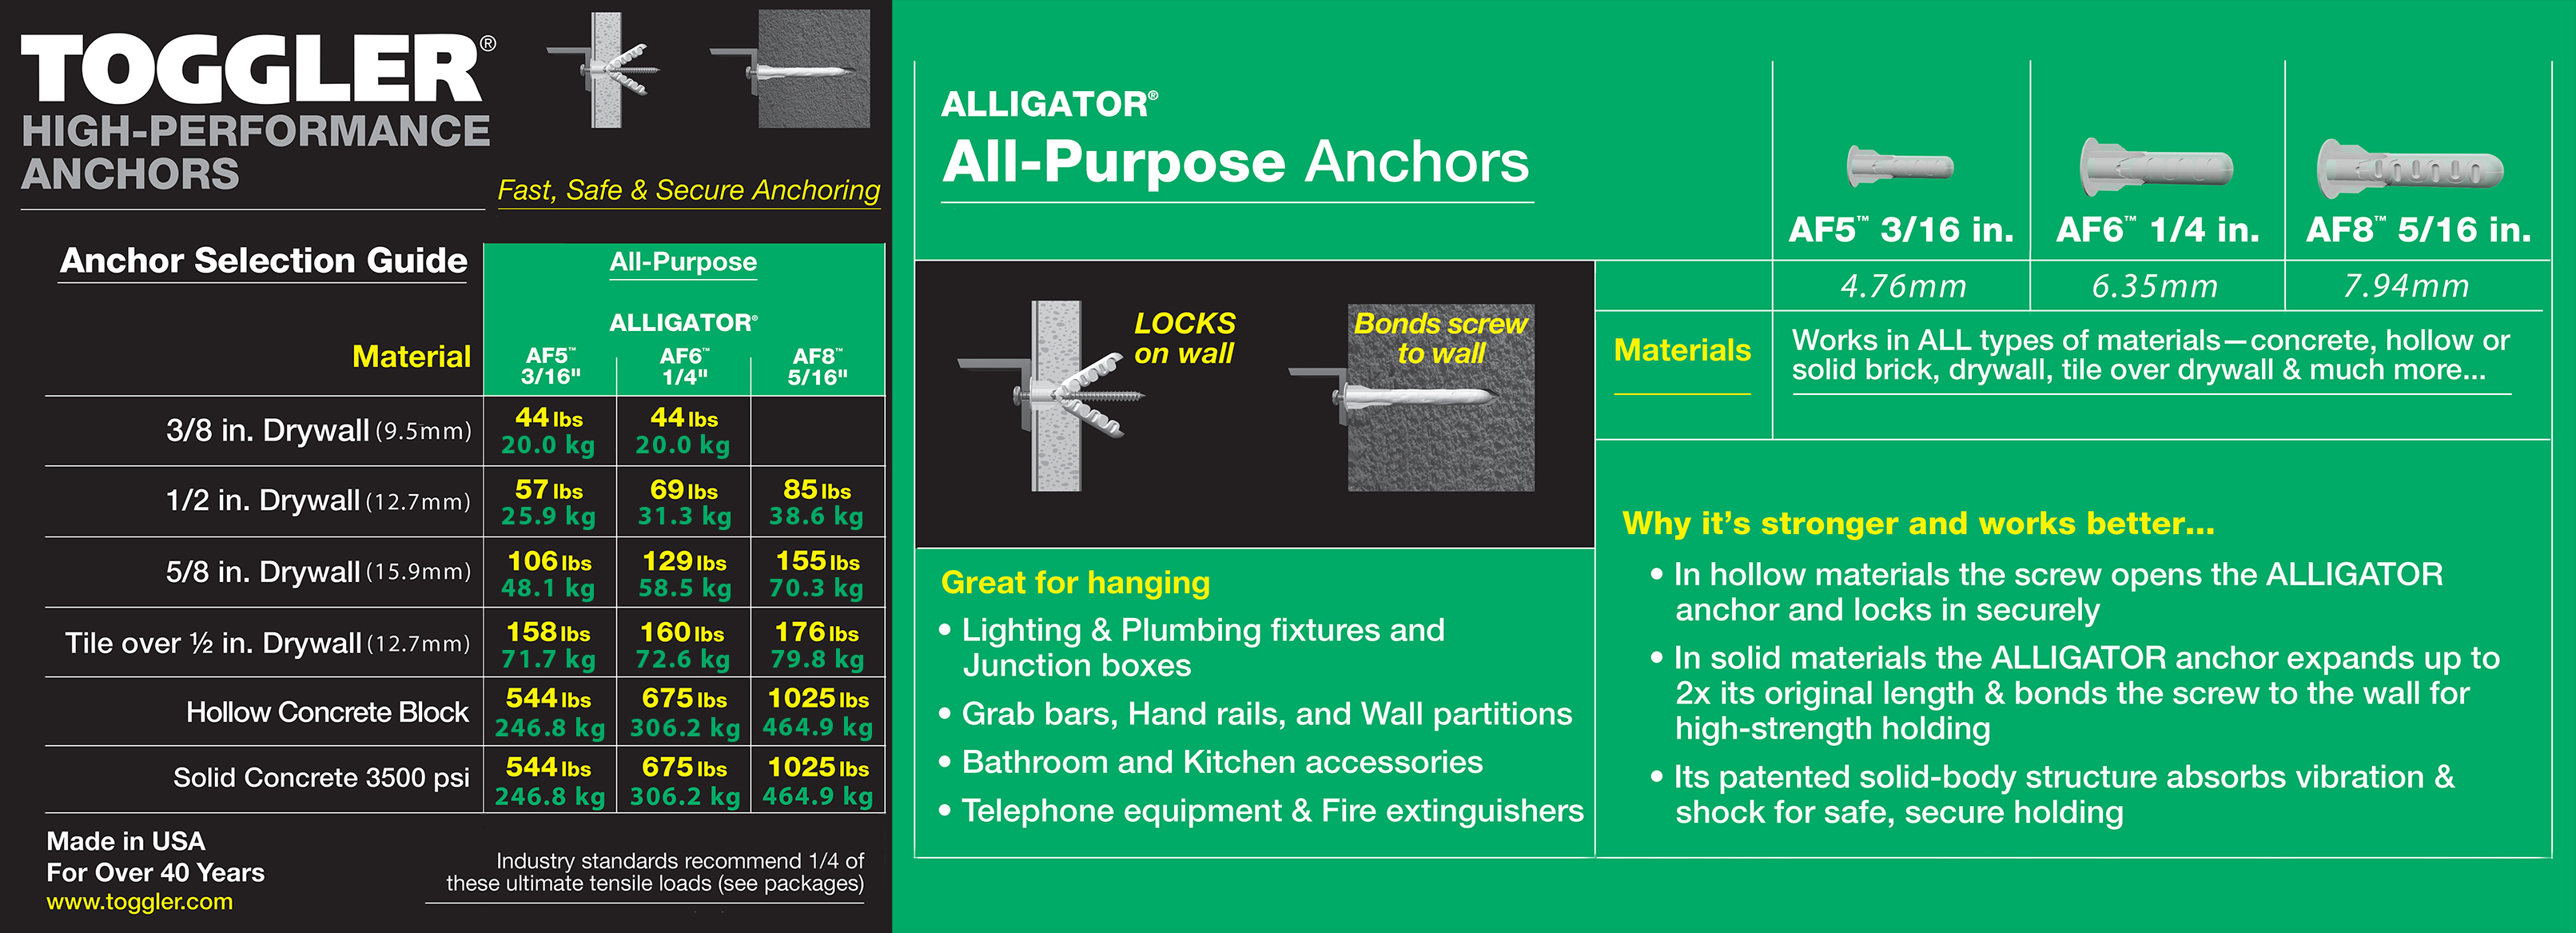 Toggler Alligator Alligator Anchors Archives Toggler New Zealand